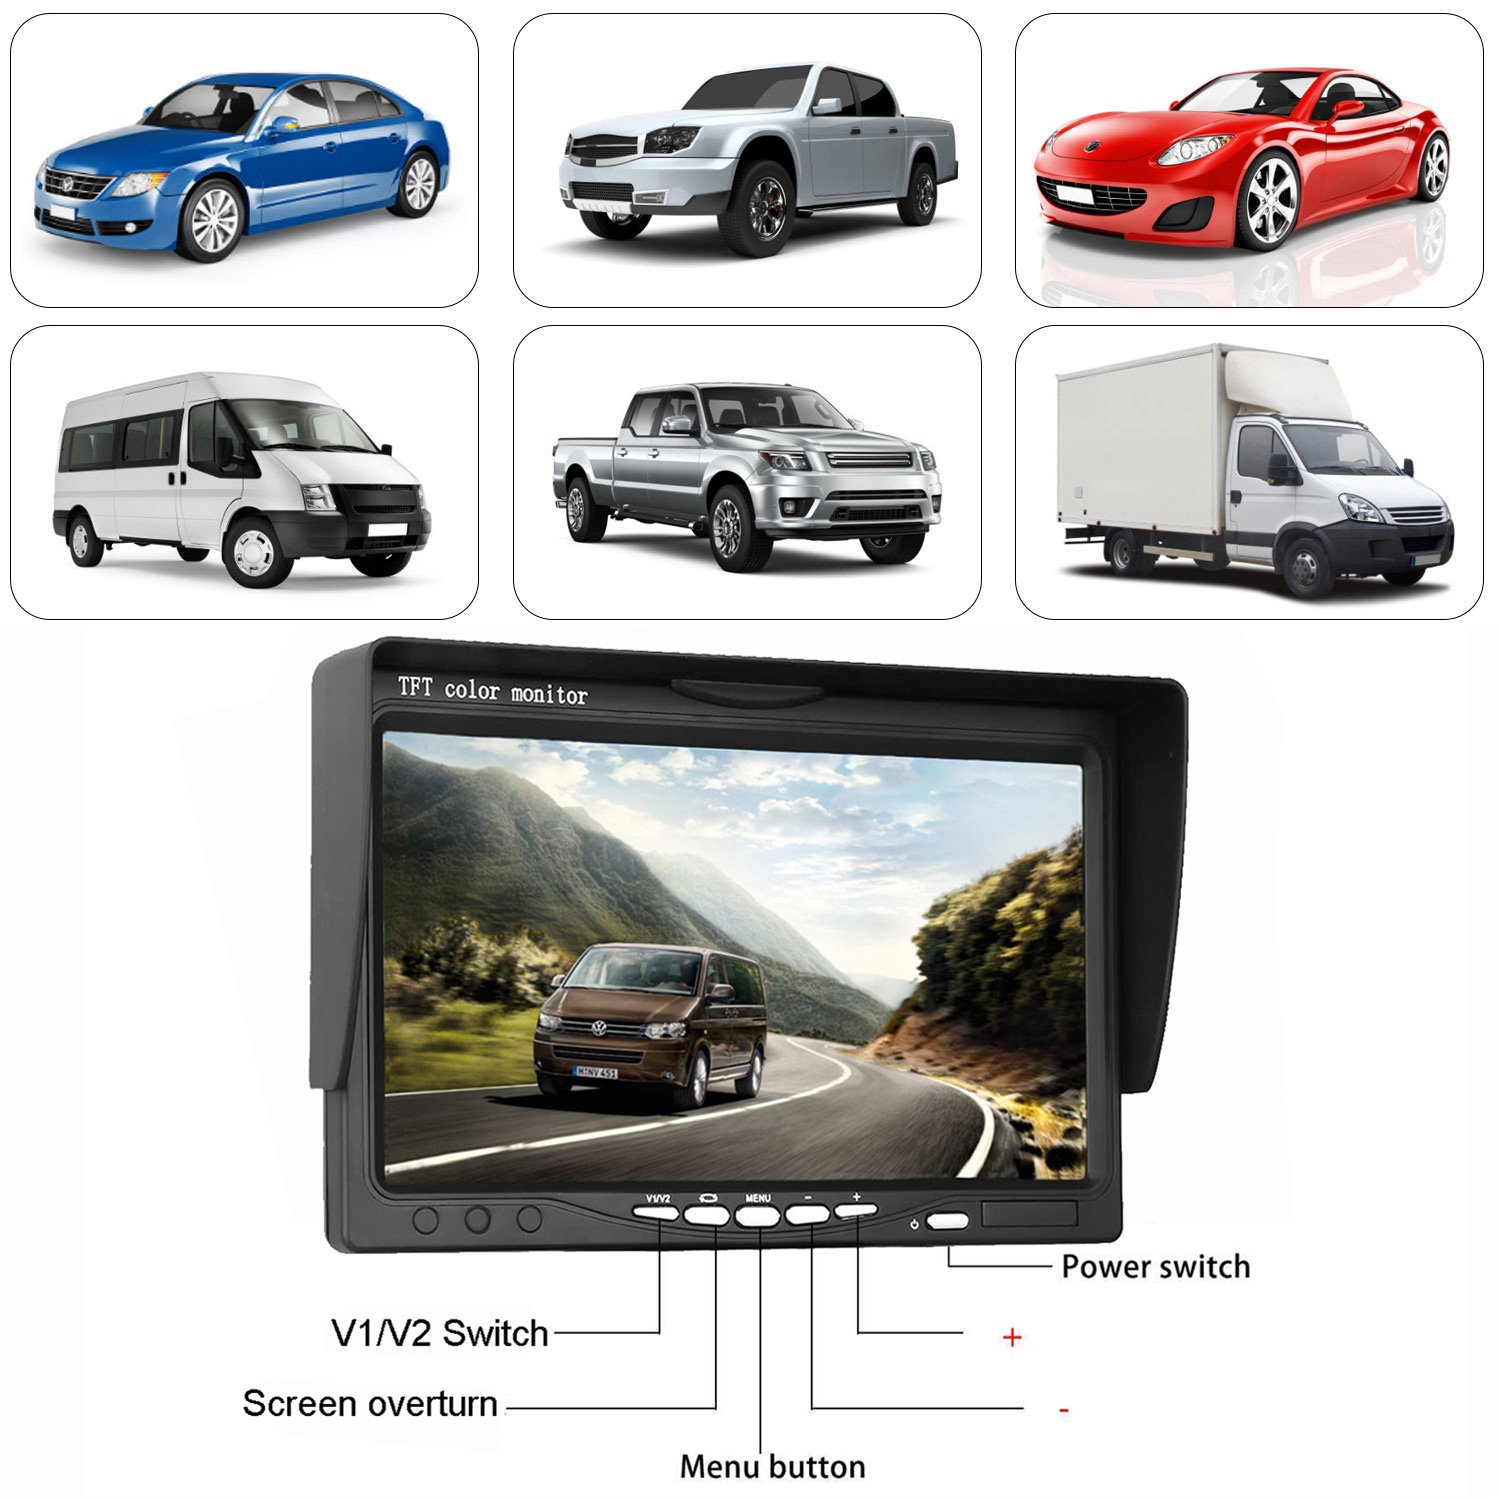 Leekooluu Backup Camera And 734 Monitor System For Car Suv Van Wiring Diagram Audi Q5 2016 Pickup Truck Rv Trailer Single Power Rear Side Front View Reversing Driving Use